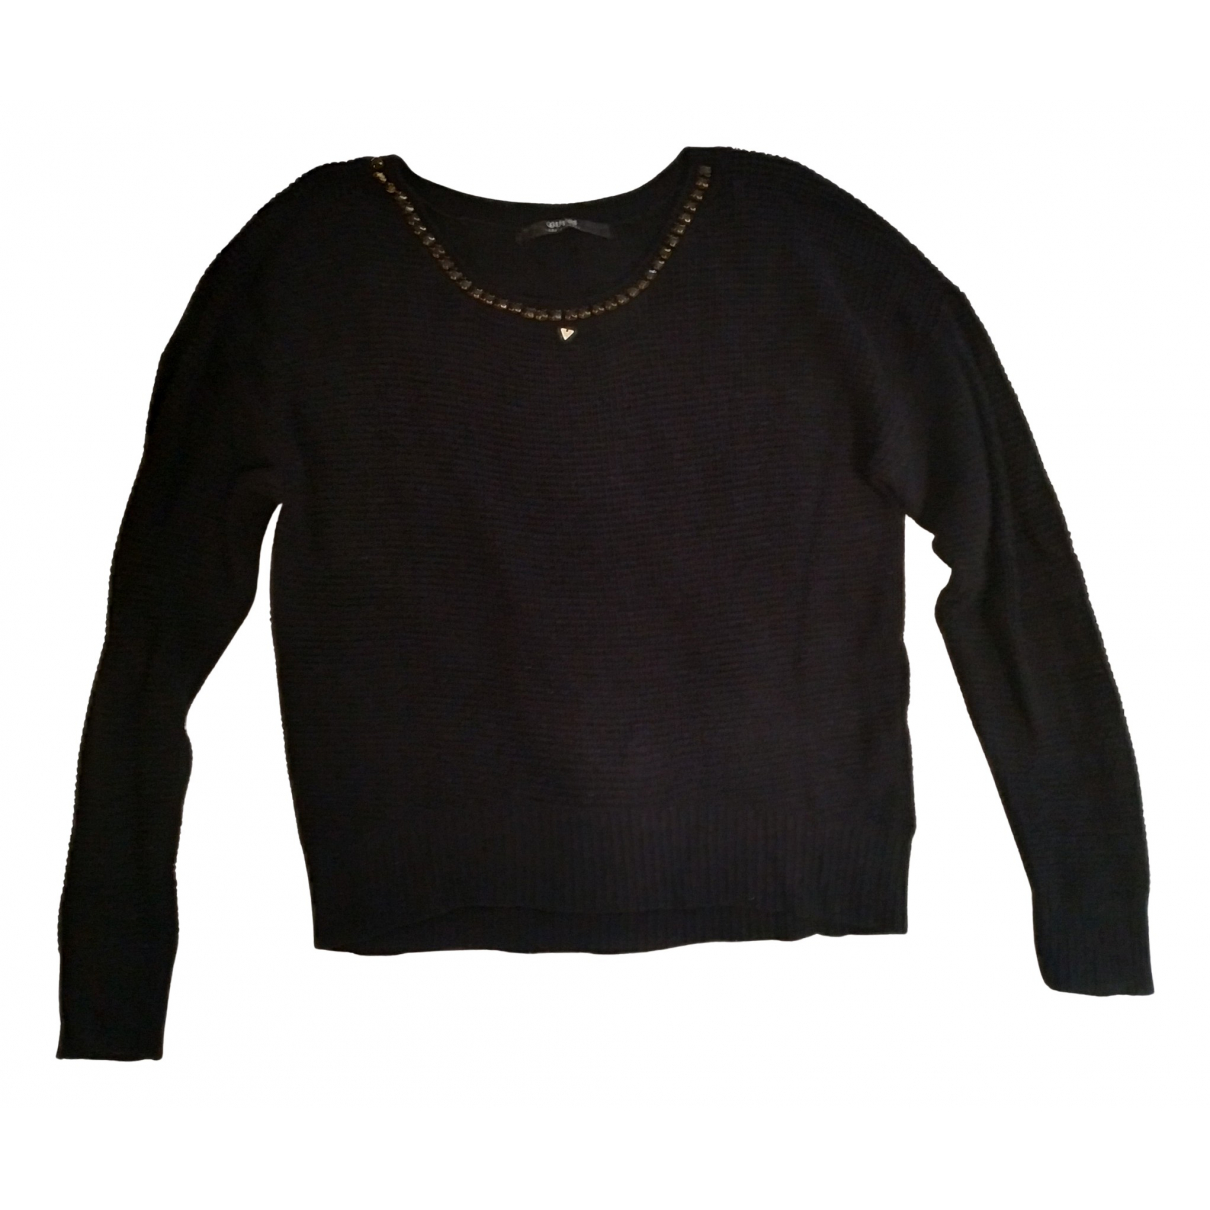 Guess N Black Knitwear for Women 42 FR